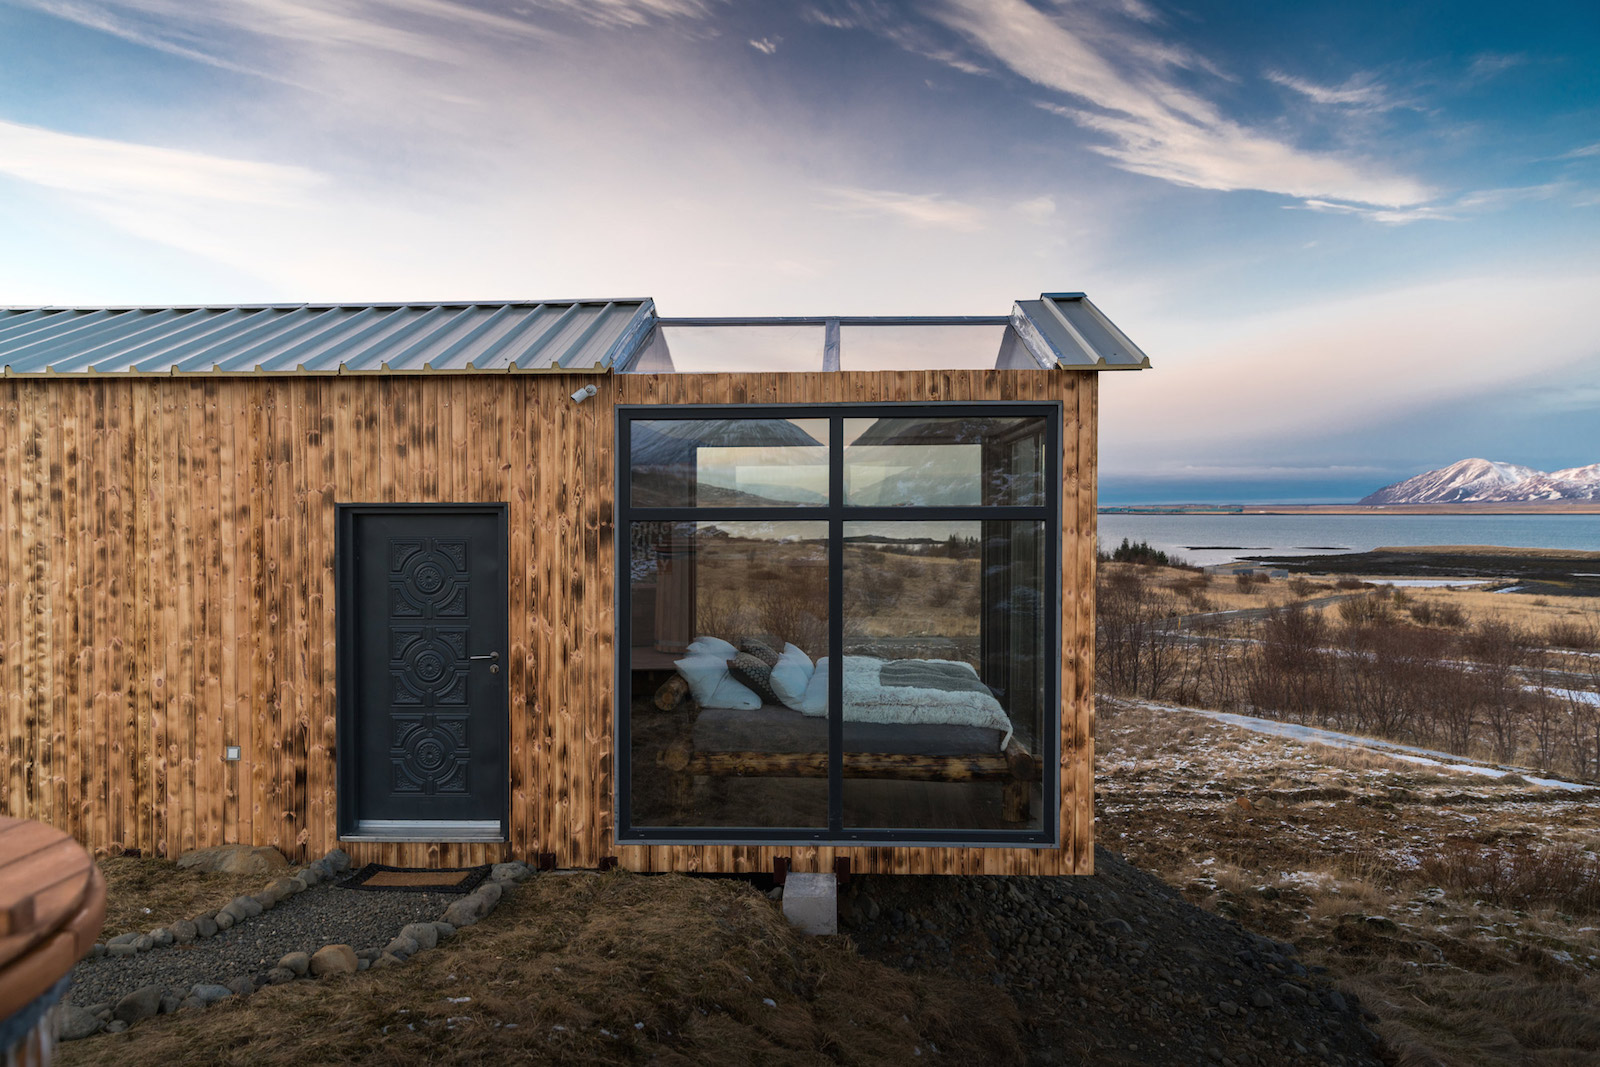 Fesselnde Conhouse Referenz Von Whimsical Glass Lodge In Iceland